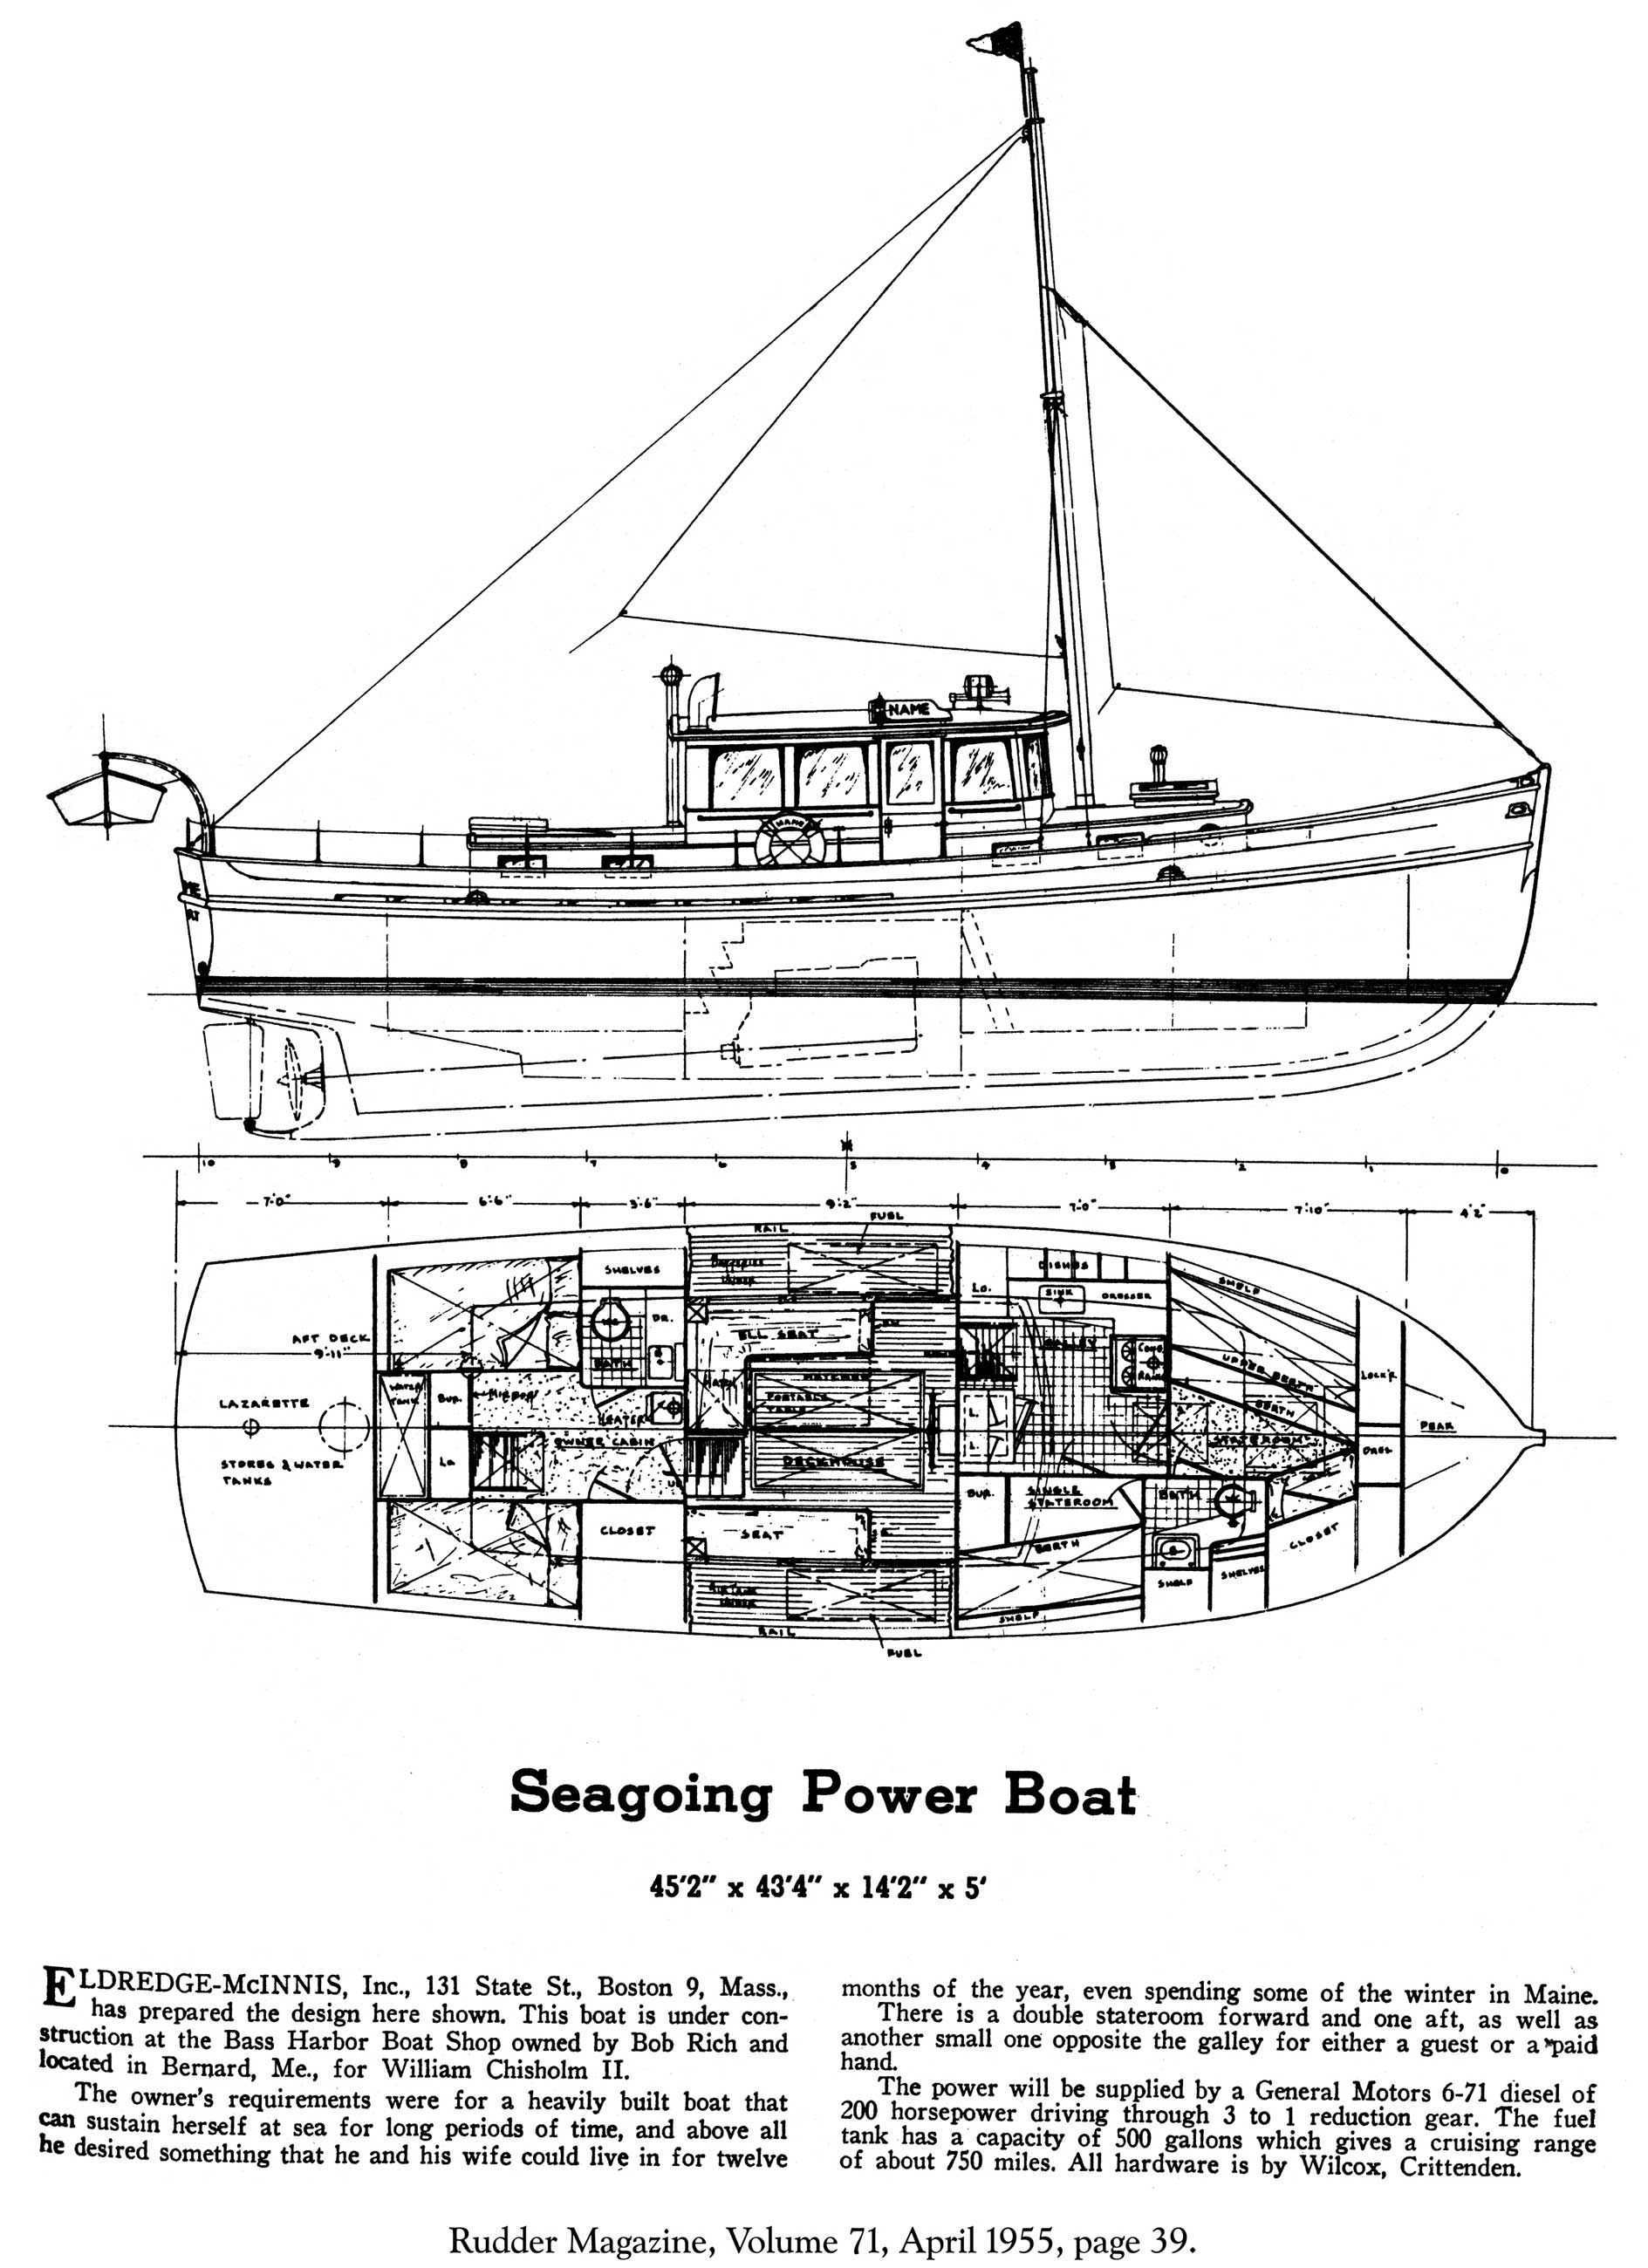 Seagoing Power Boat